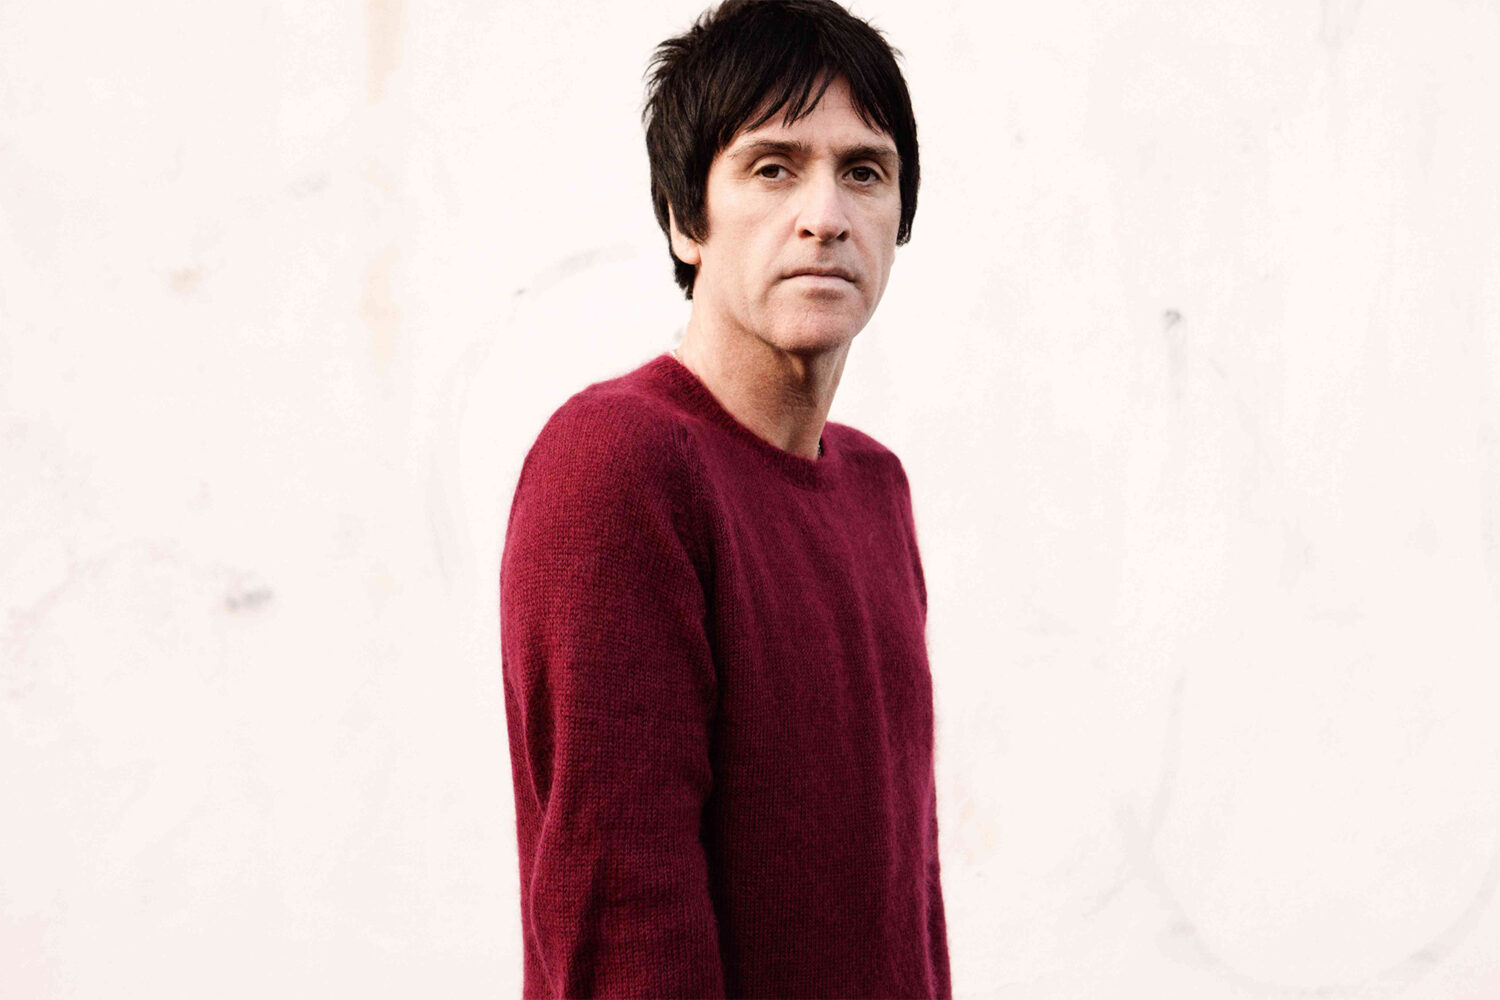 Watch Johnny Marr and Noel Gallagher play 'How Soon Is Now' at Brixton Academy